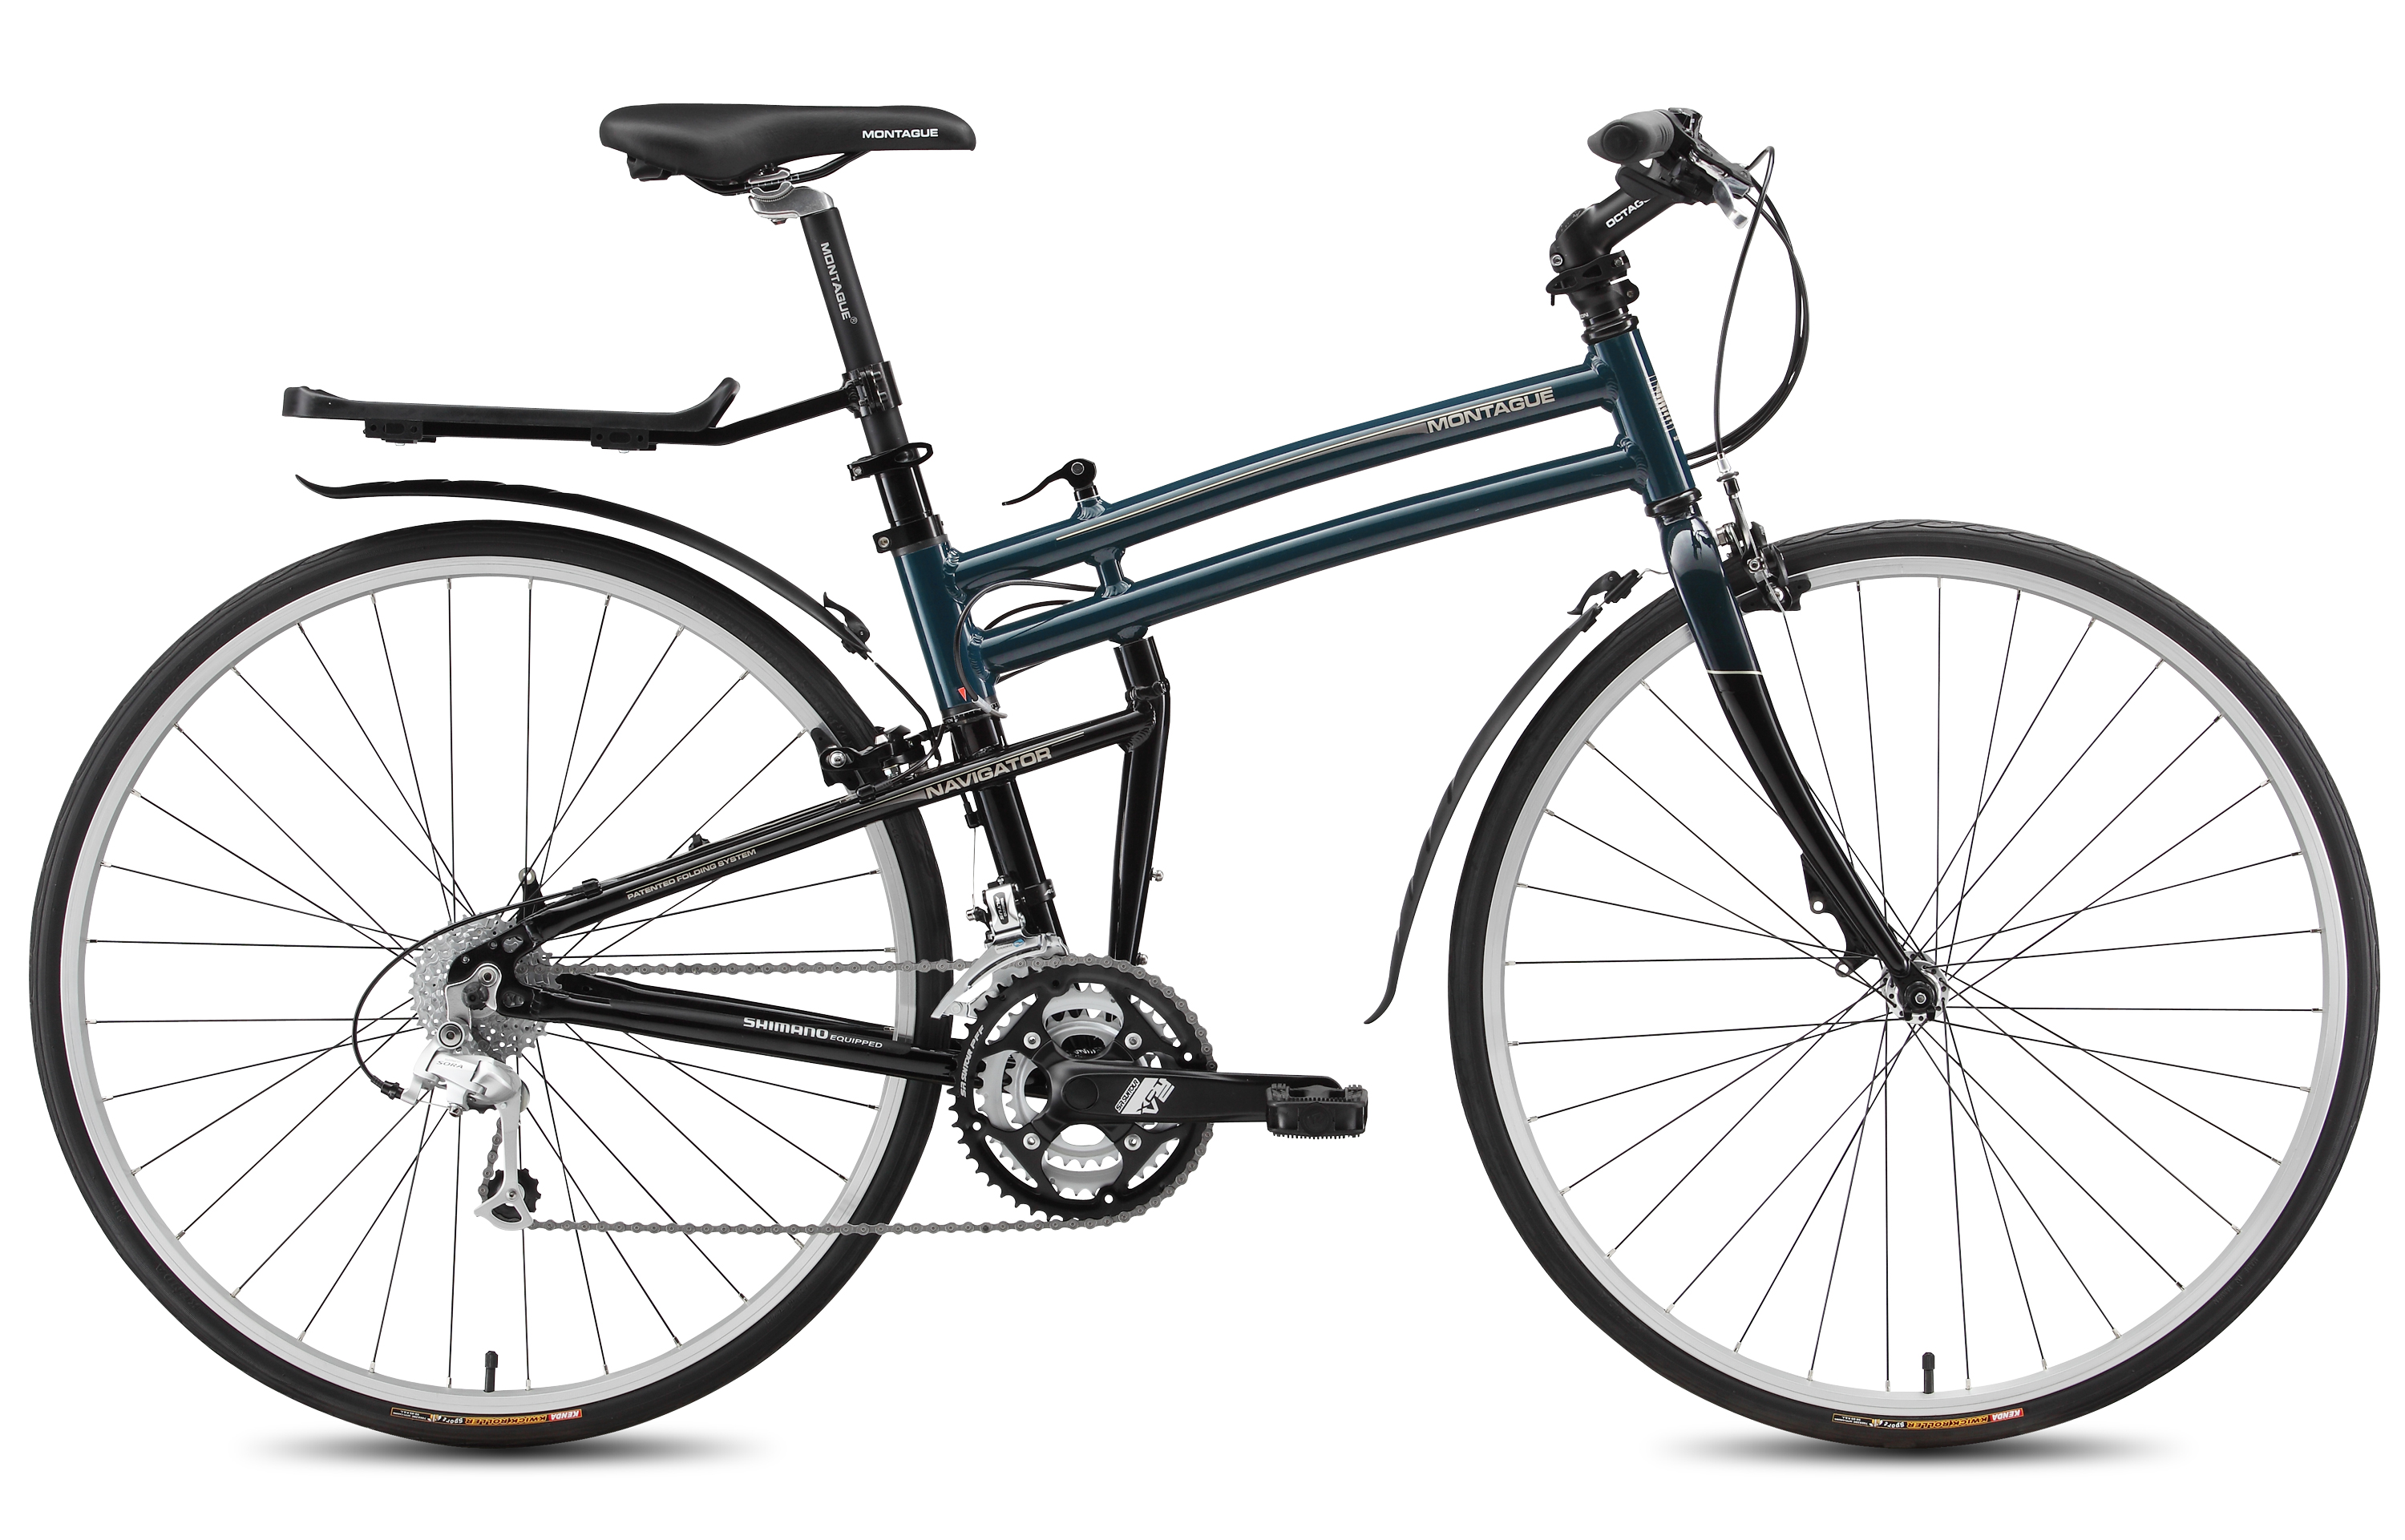 2011 Navigator Pavement Folding Bike